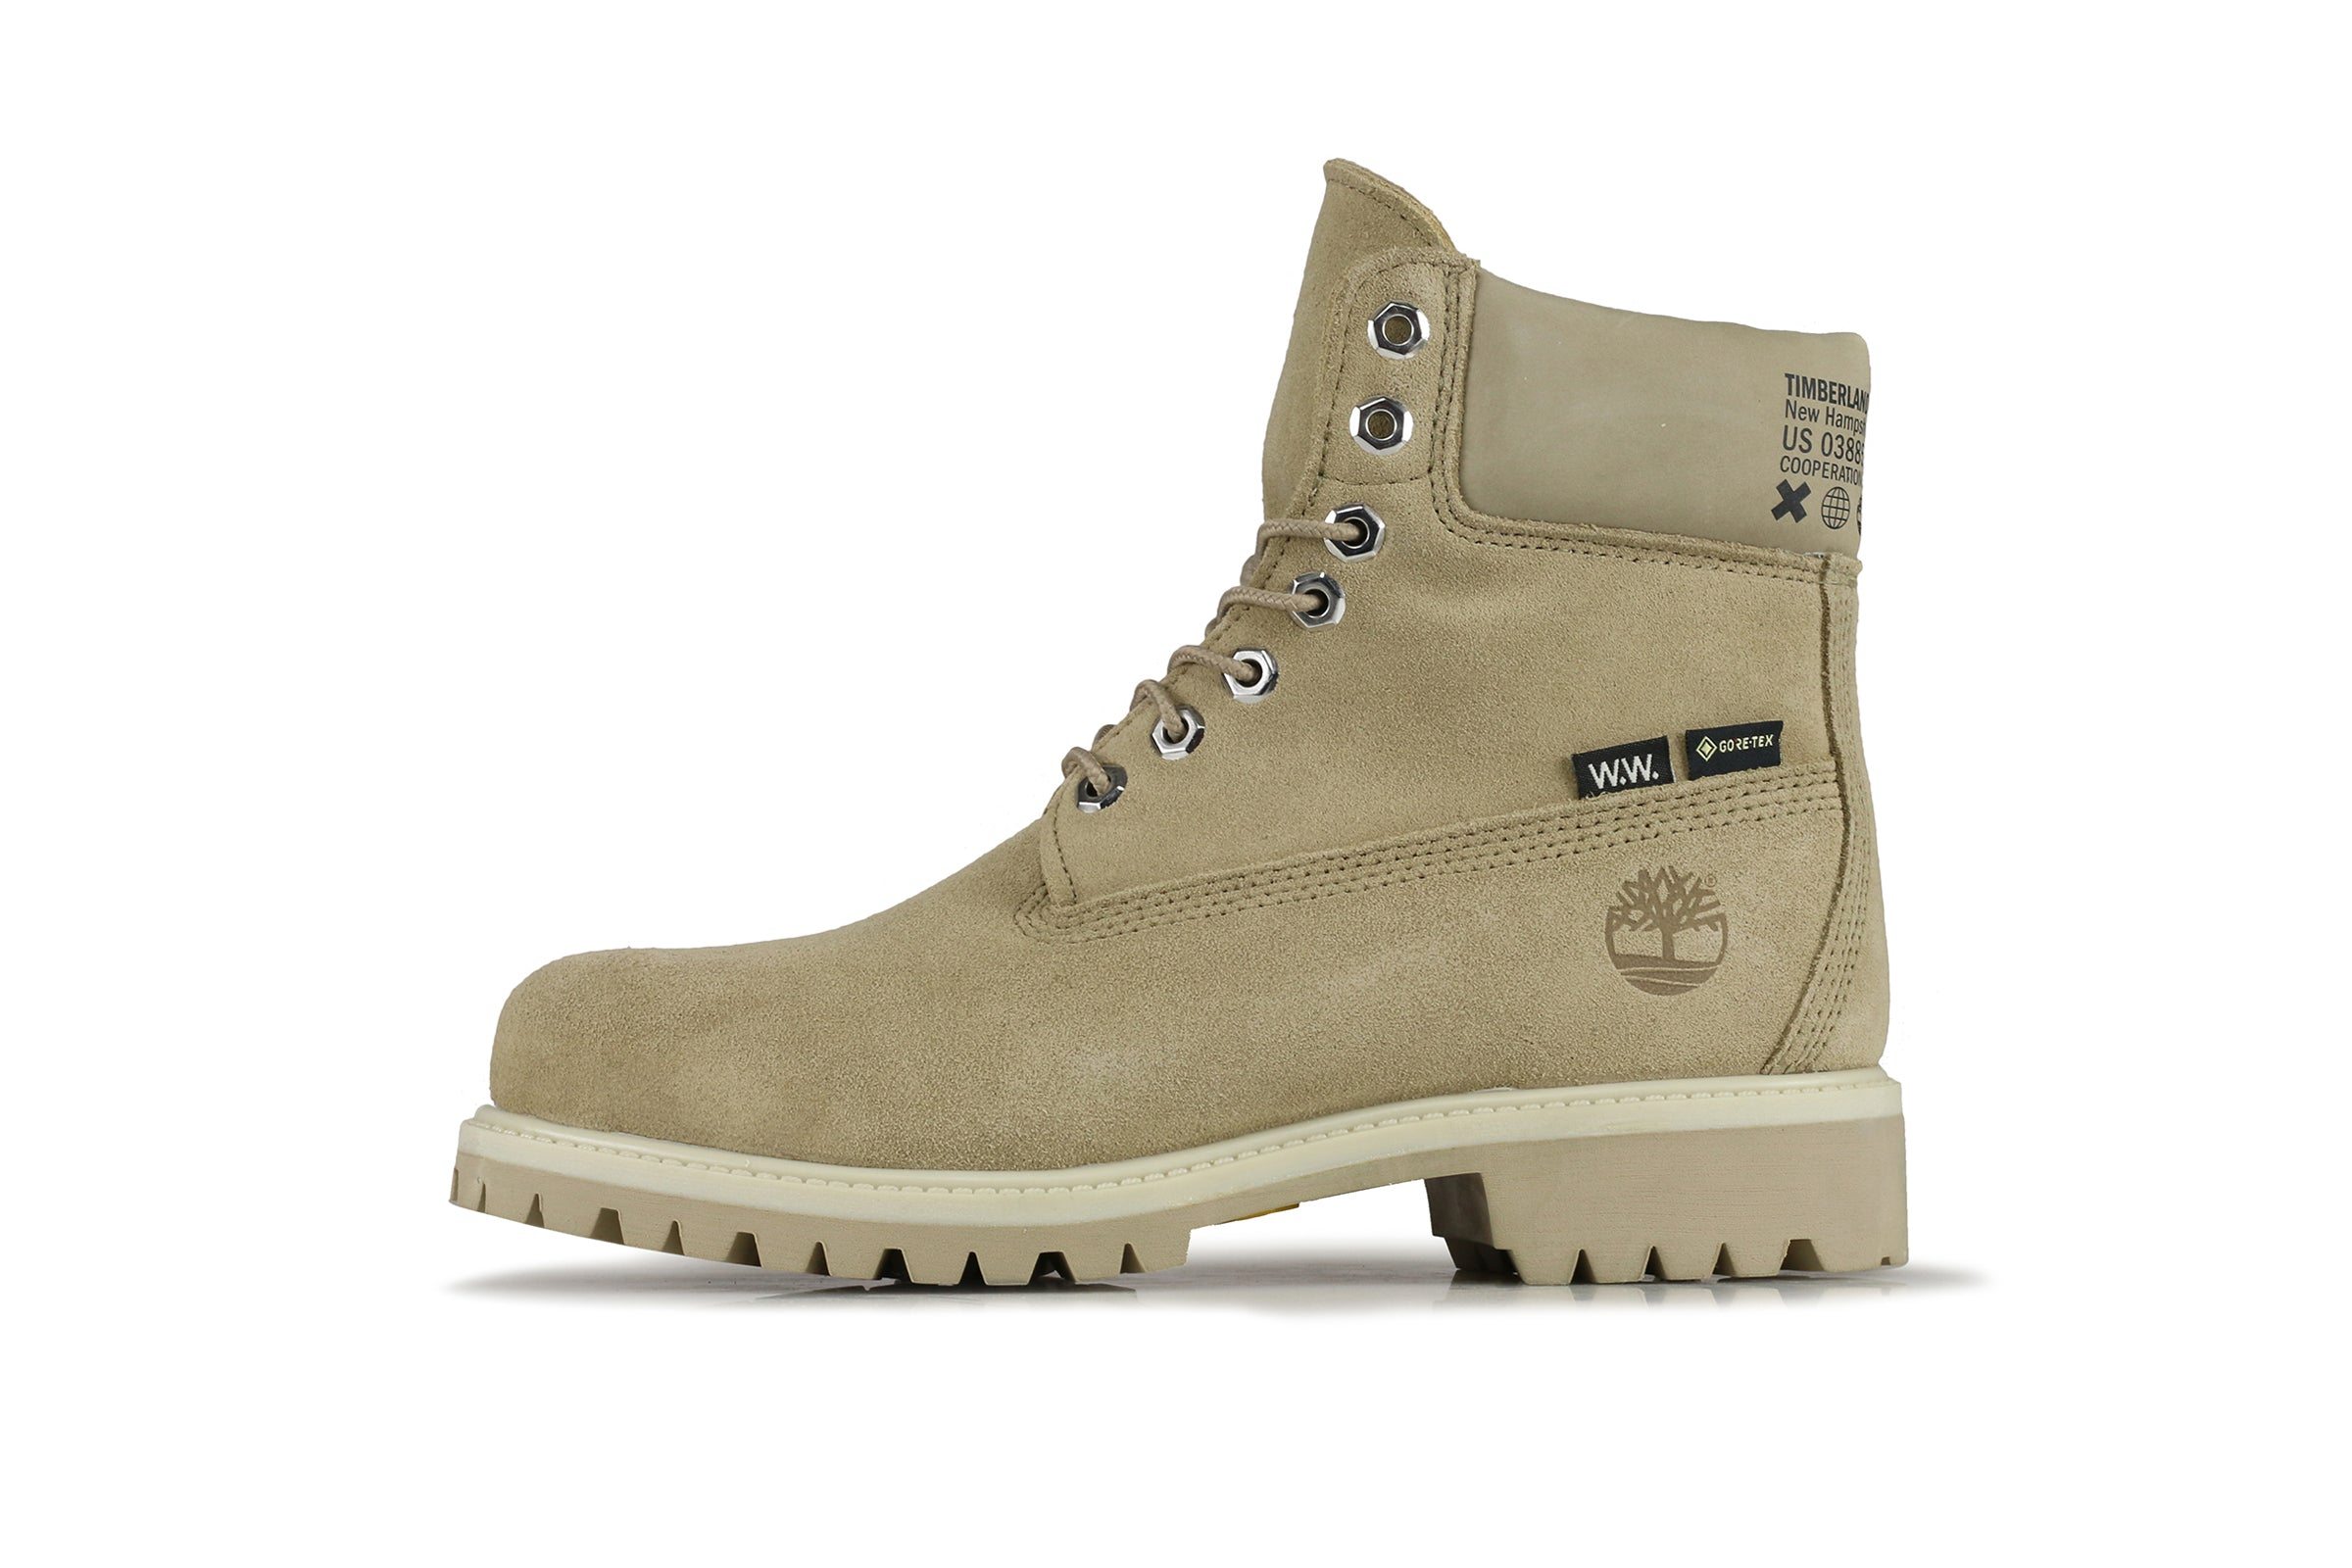 Timberland Winter Extreme 6 Inch x Wood Wood